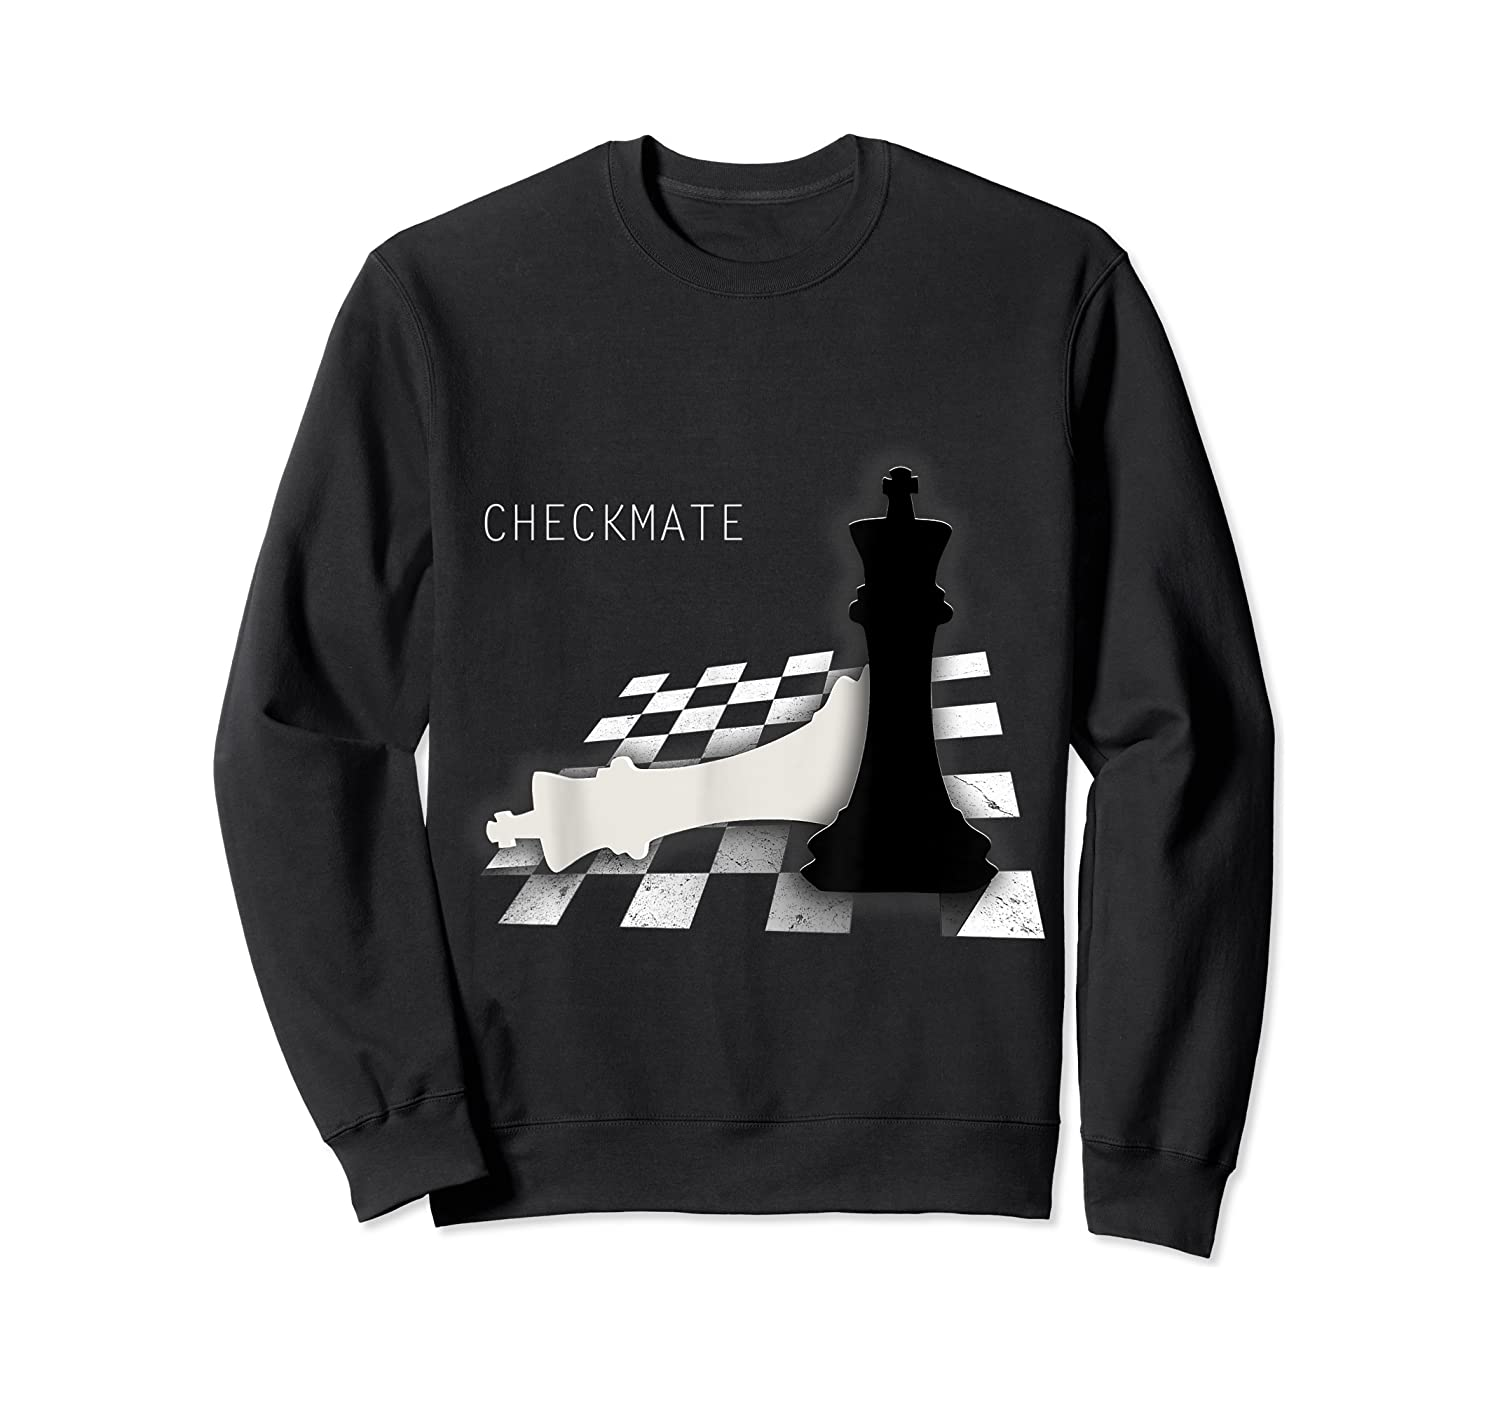 Checkmate Funny Cute Gift For Cool Chess Player Shirts Crewneck Sweater